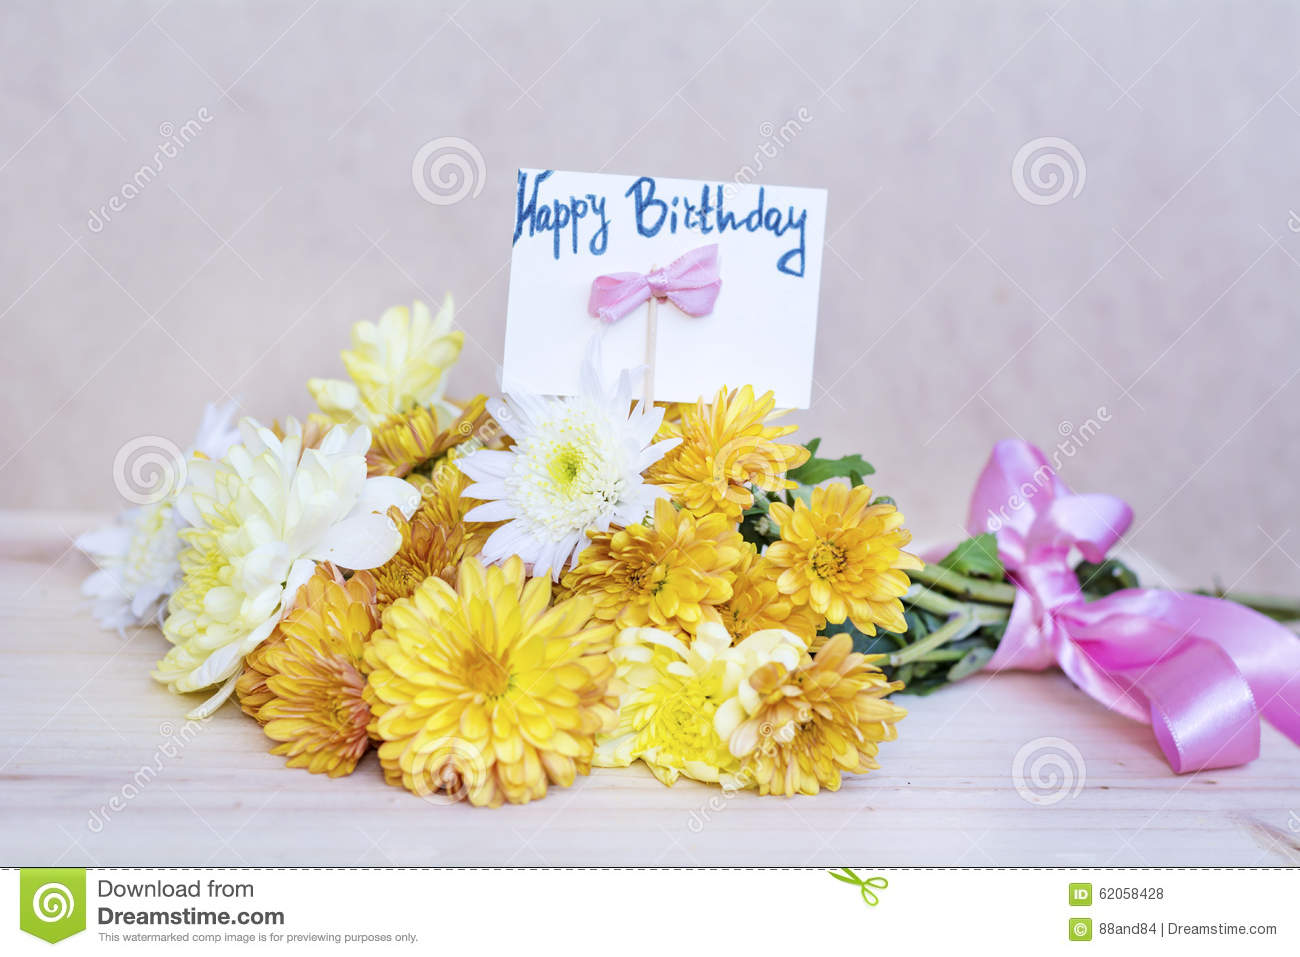 beautiful yellow chrysanthemums bouquet with happy birthday card, Beautiful flower